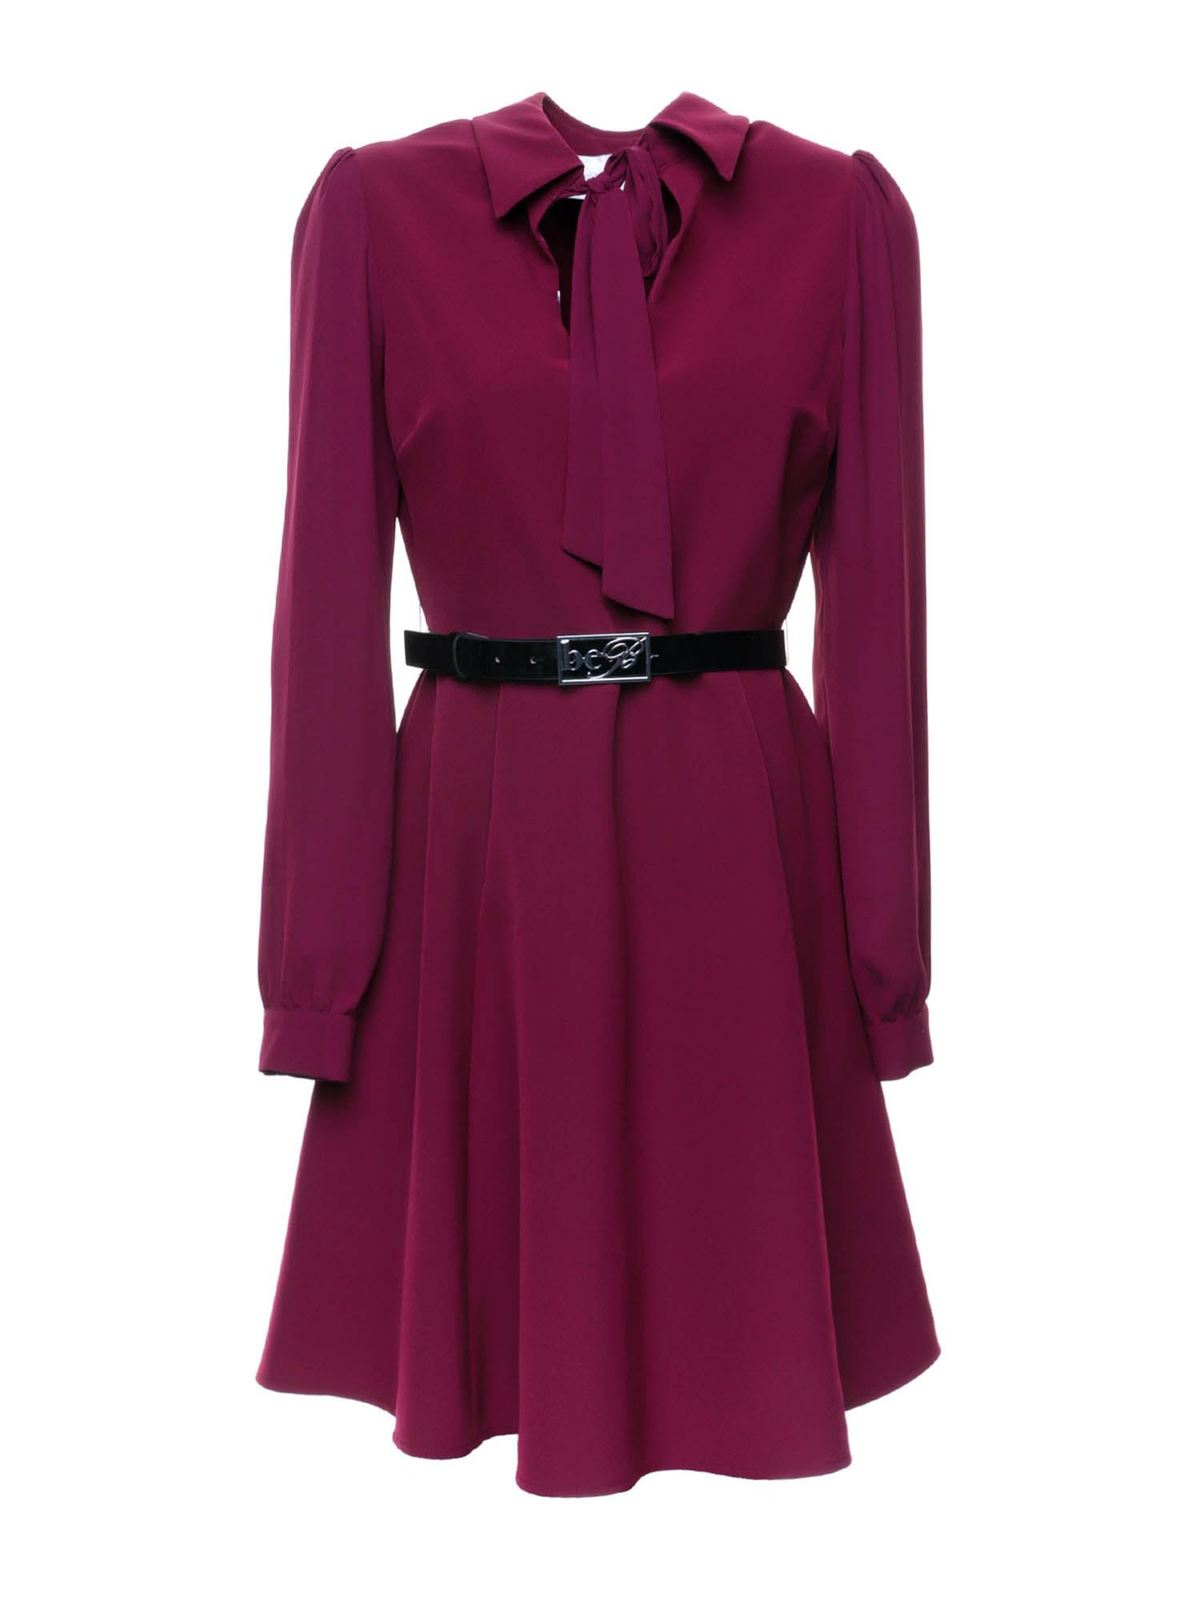 Blumarine BELT DRESS IN BURGUNDY